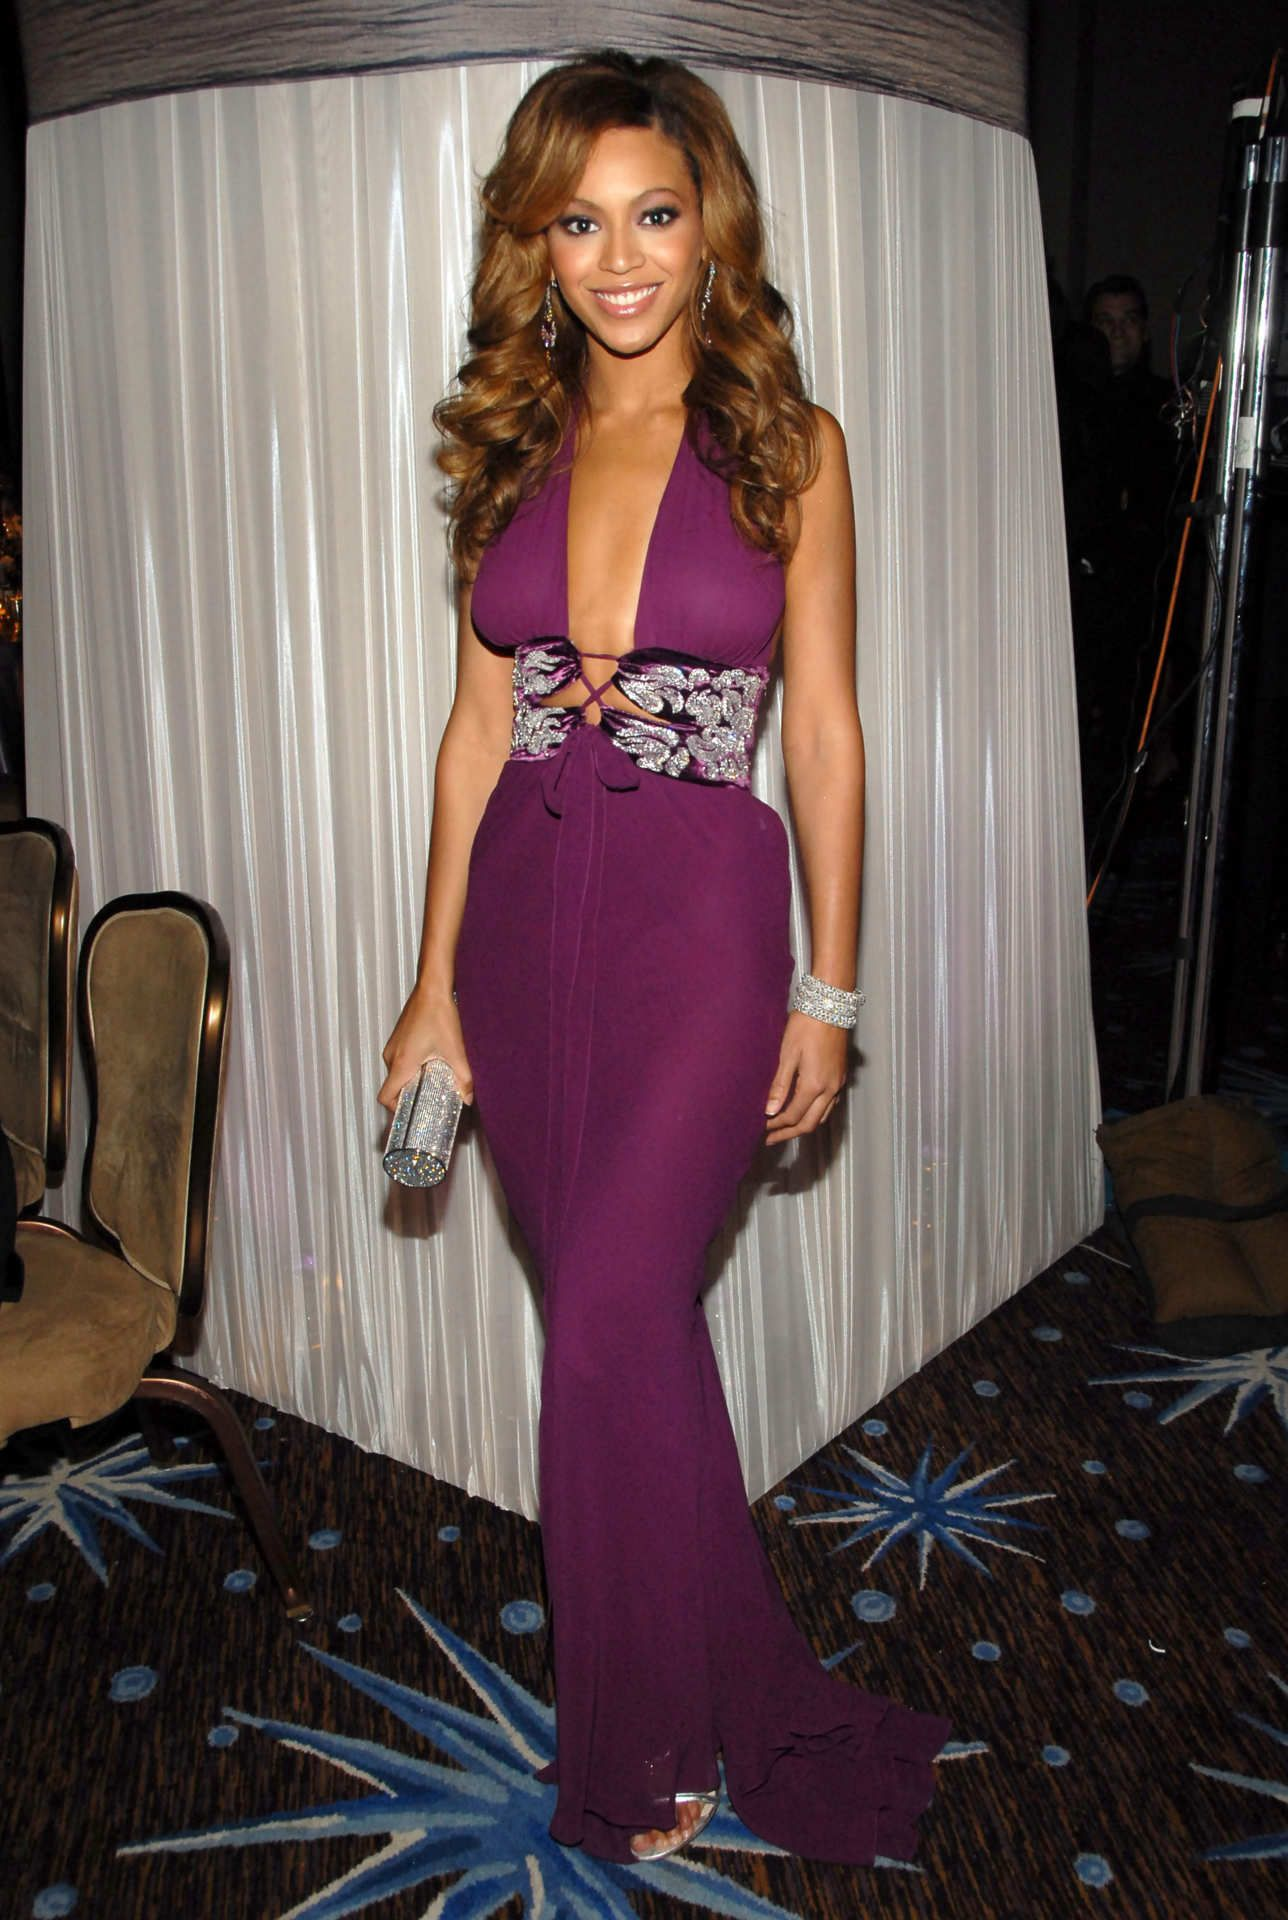 Beyonce Can Even Make A Fedora Look Glamorous Beyonce Outfits Celebrity Dresses Fashion [ 1920 x 1288 Pixel ]